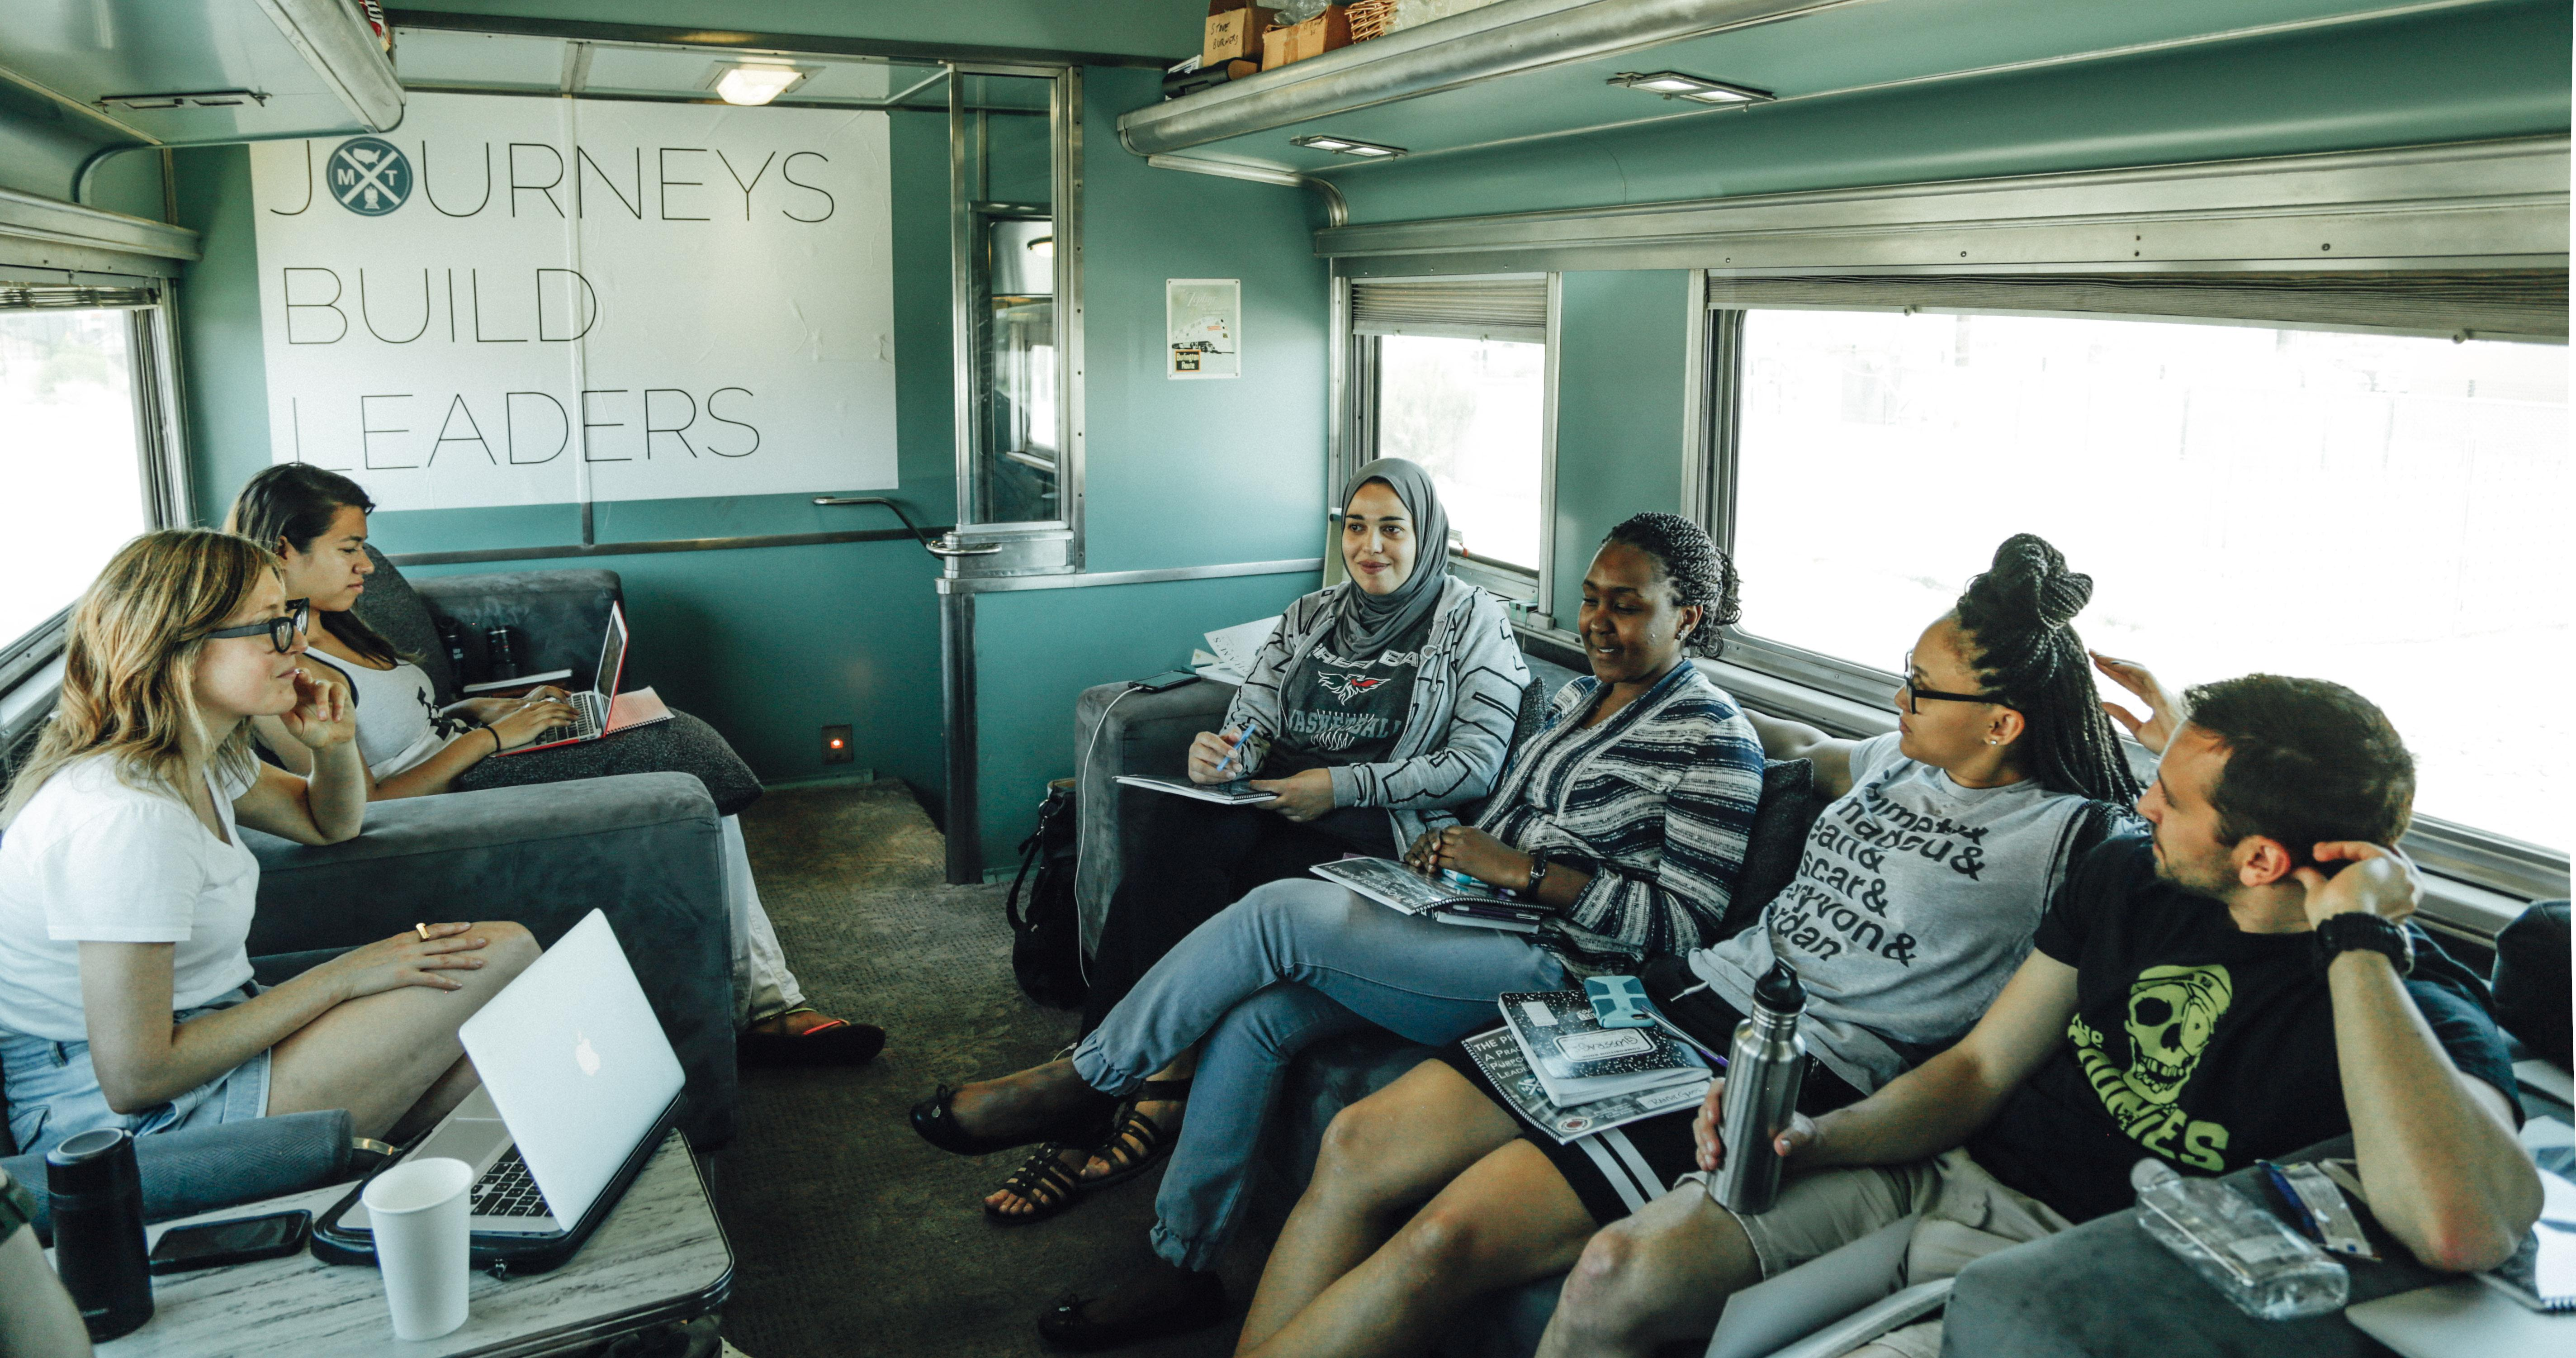 Discussion in the Lounge Car.jpg